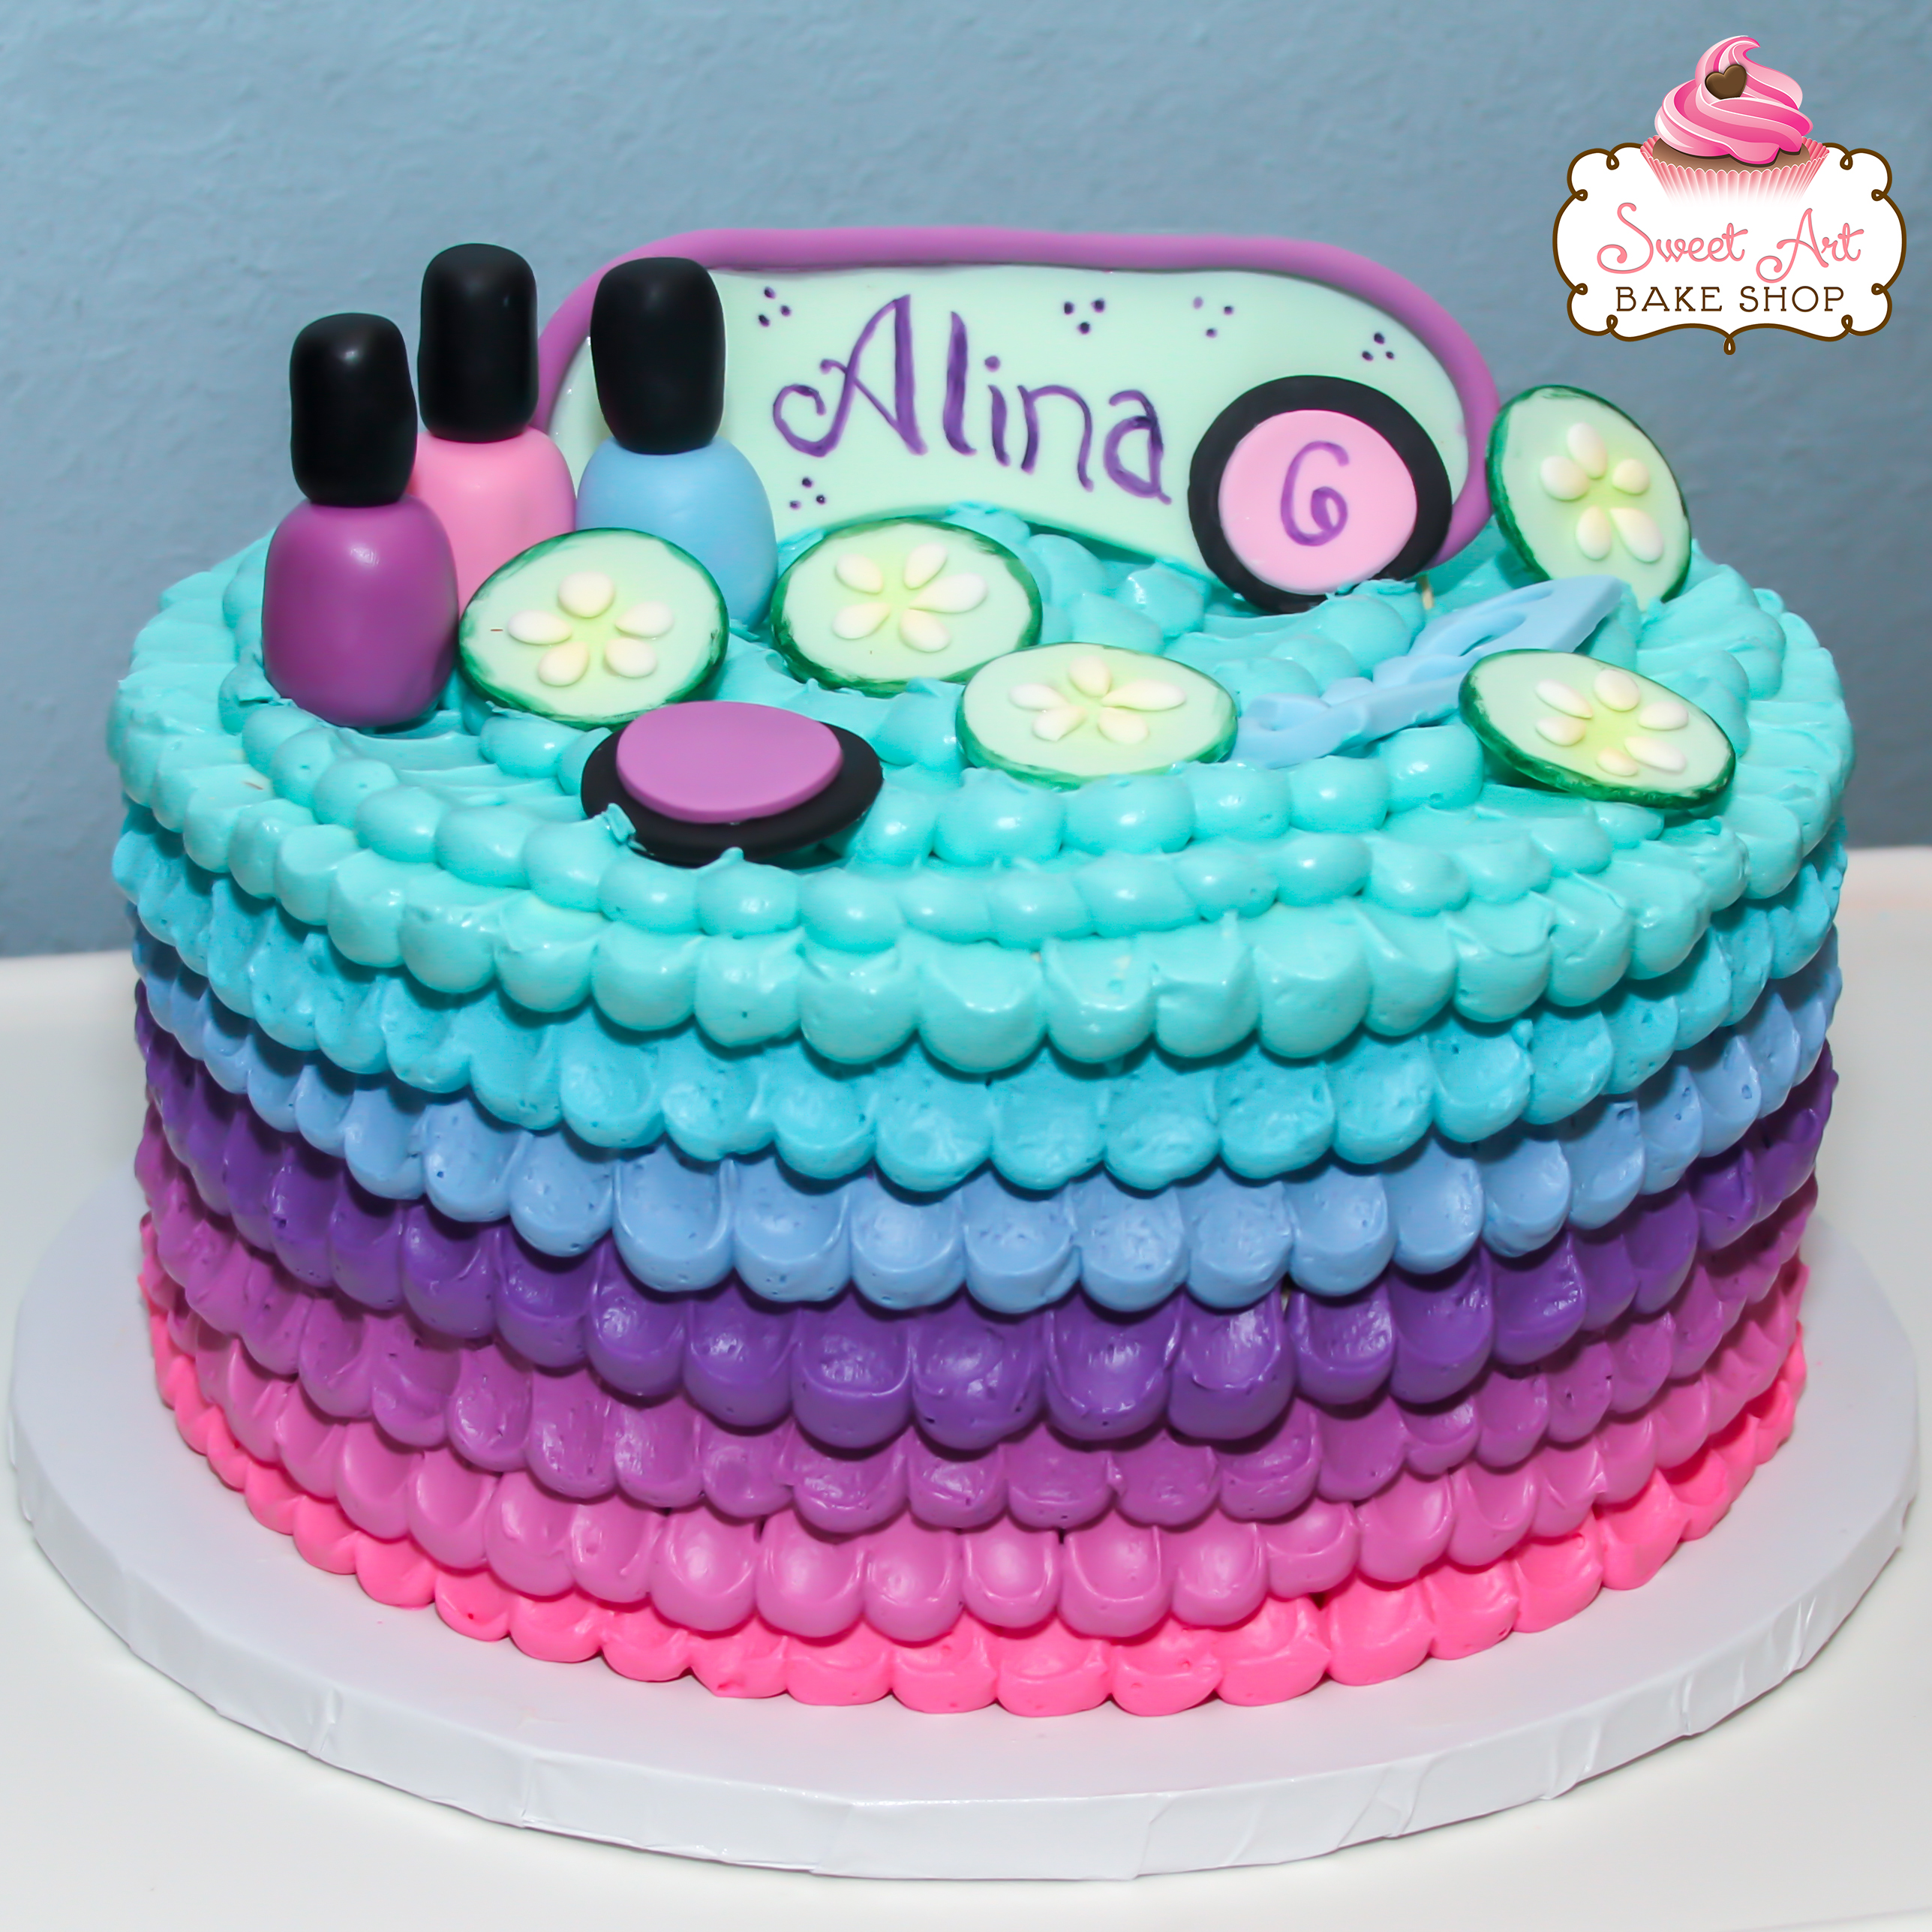 Sweet Art Bake Shop Kid Birthday Cakes